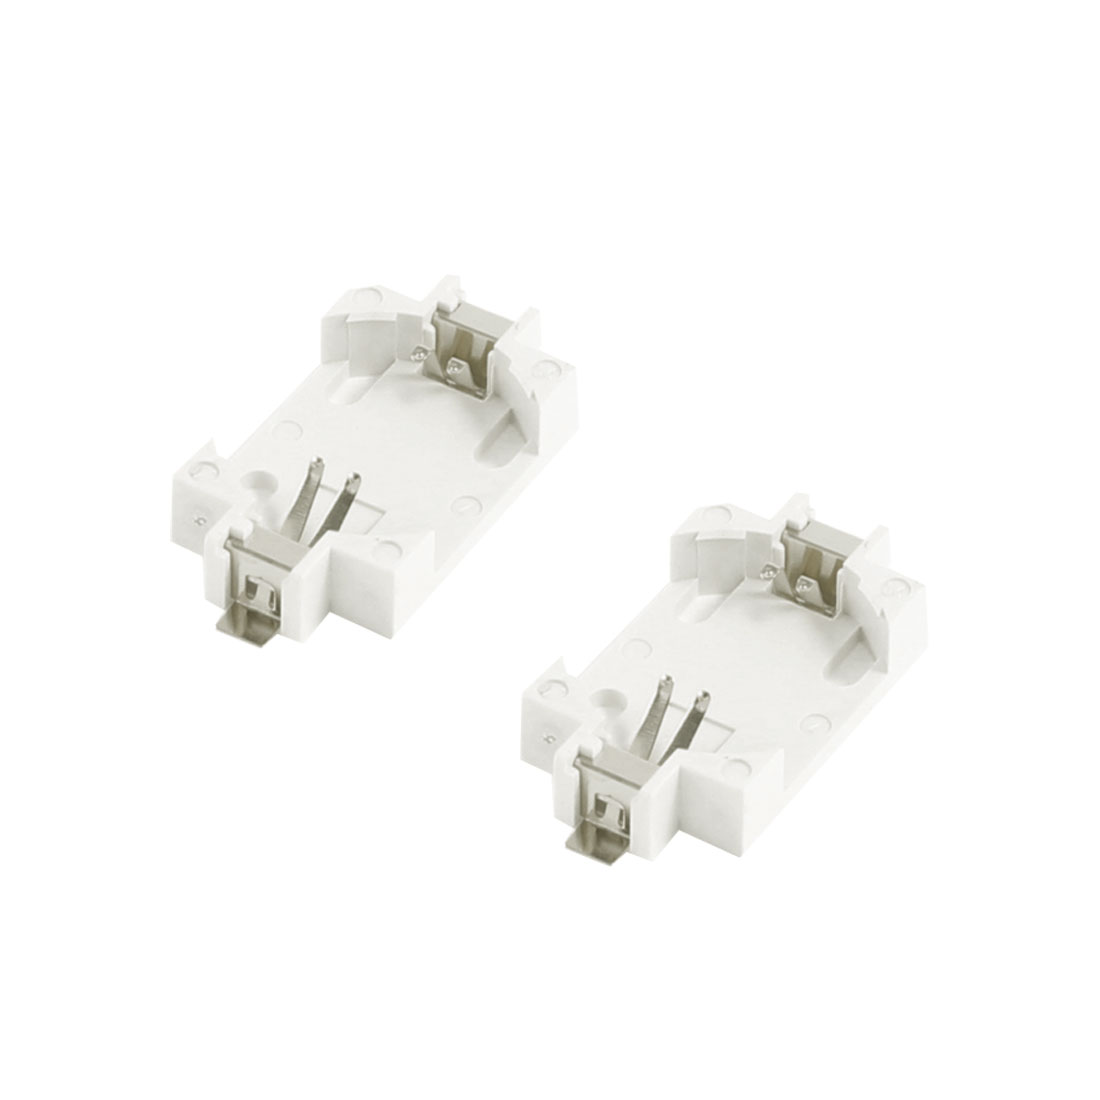 2 Pcs Off White Plastic Button Coin Cell Battery Socket Holder for CR2032